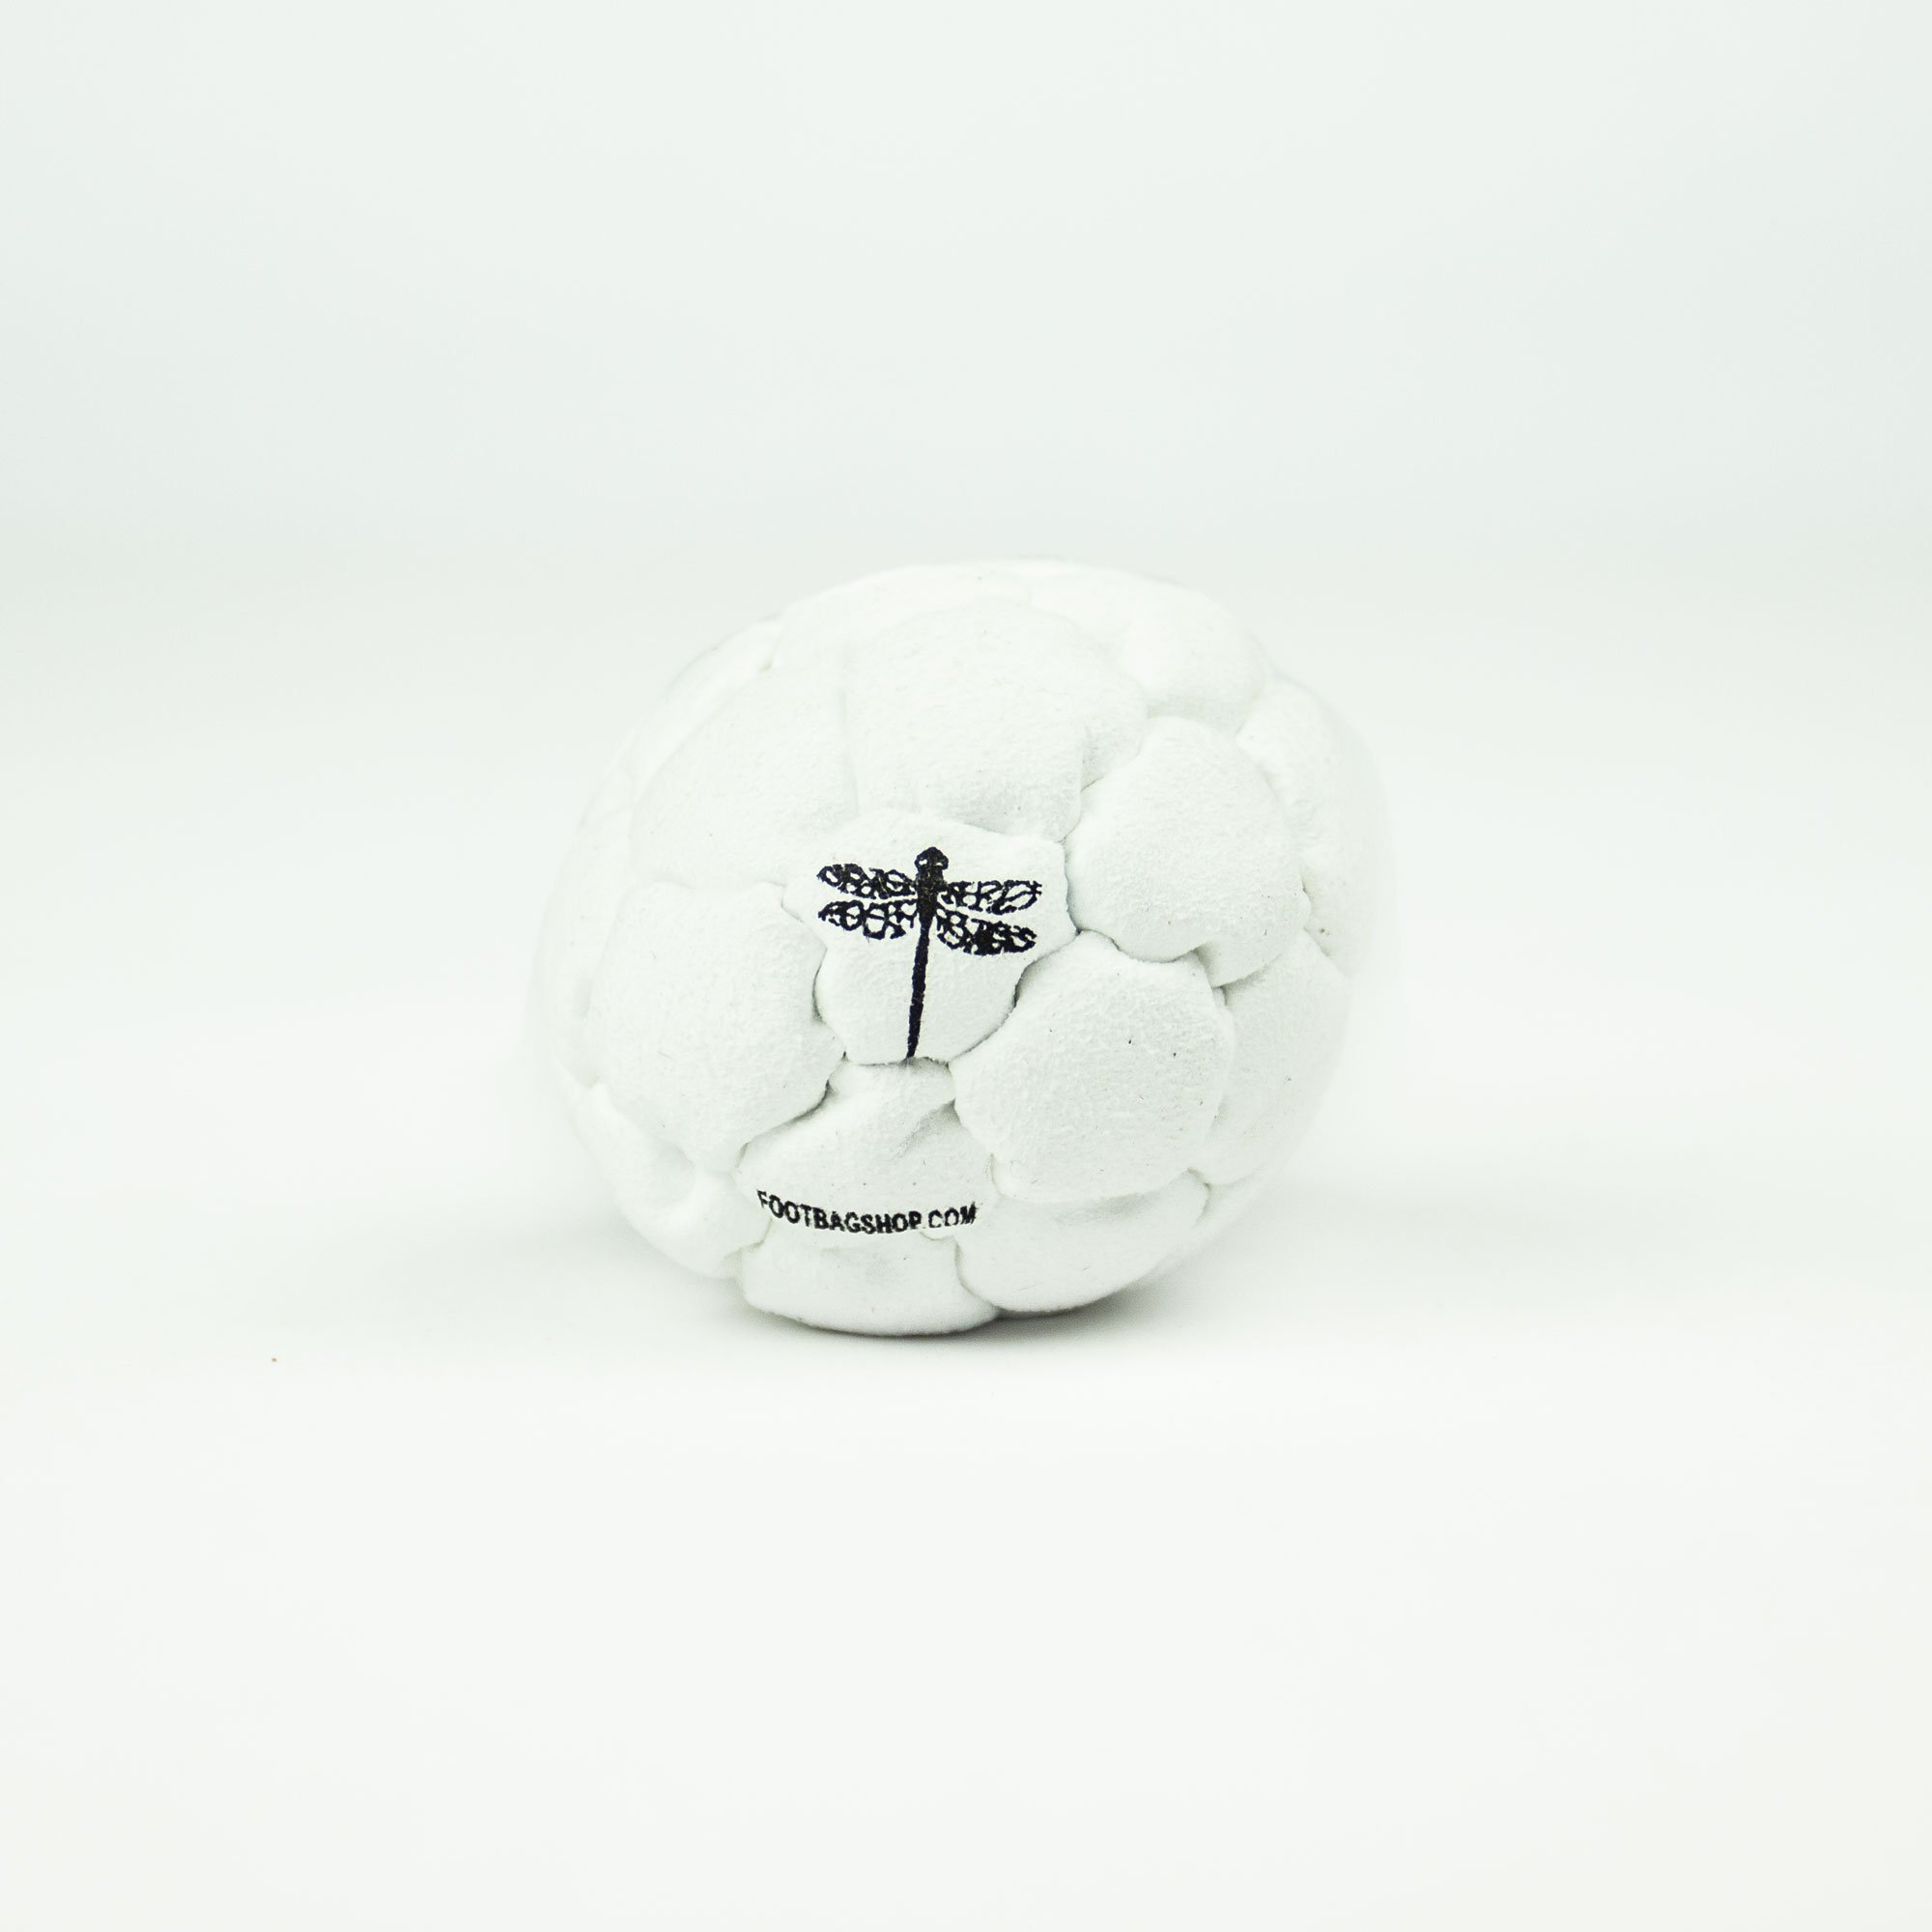 Dragonfly Footbags Snowball 32 Panel (Hacky Sack)